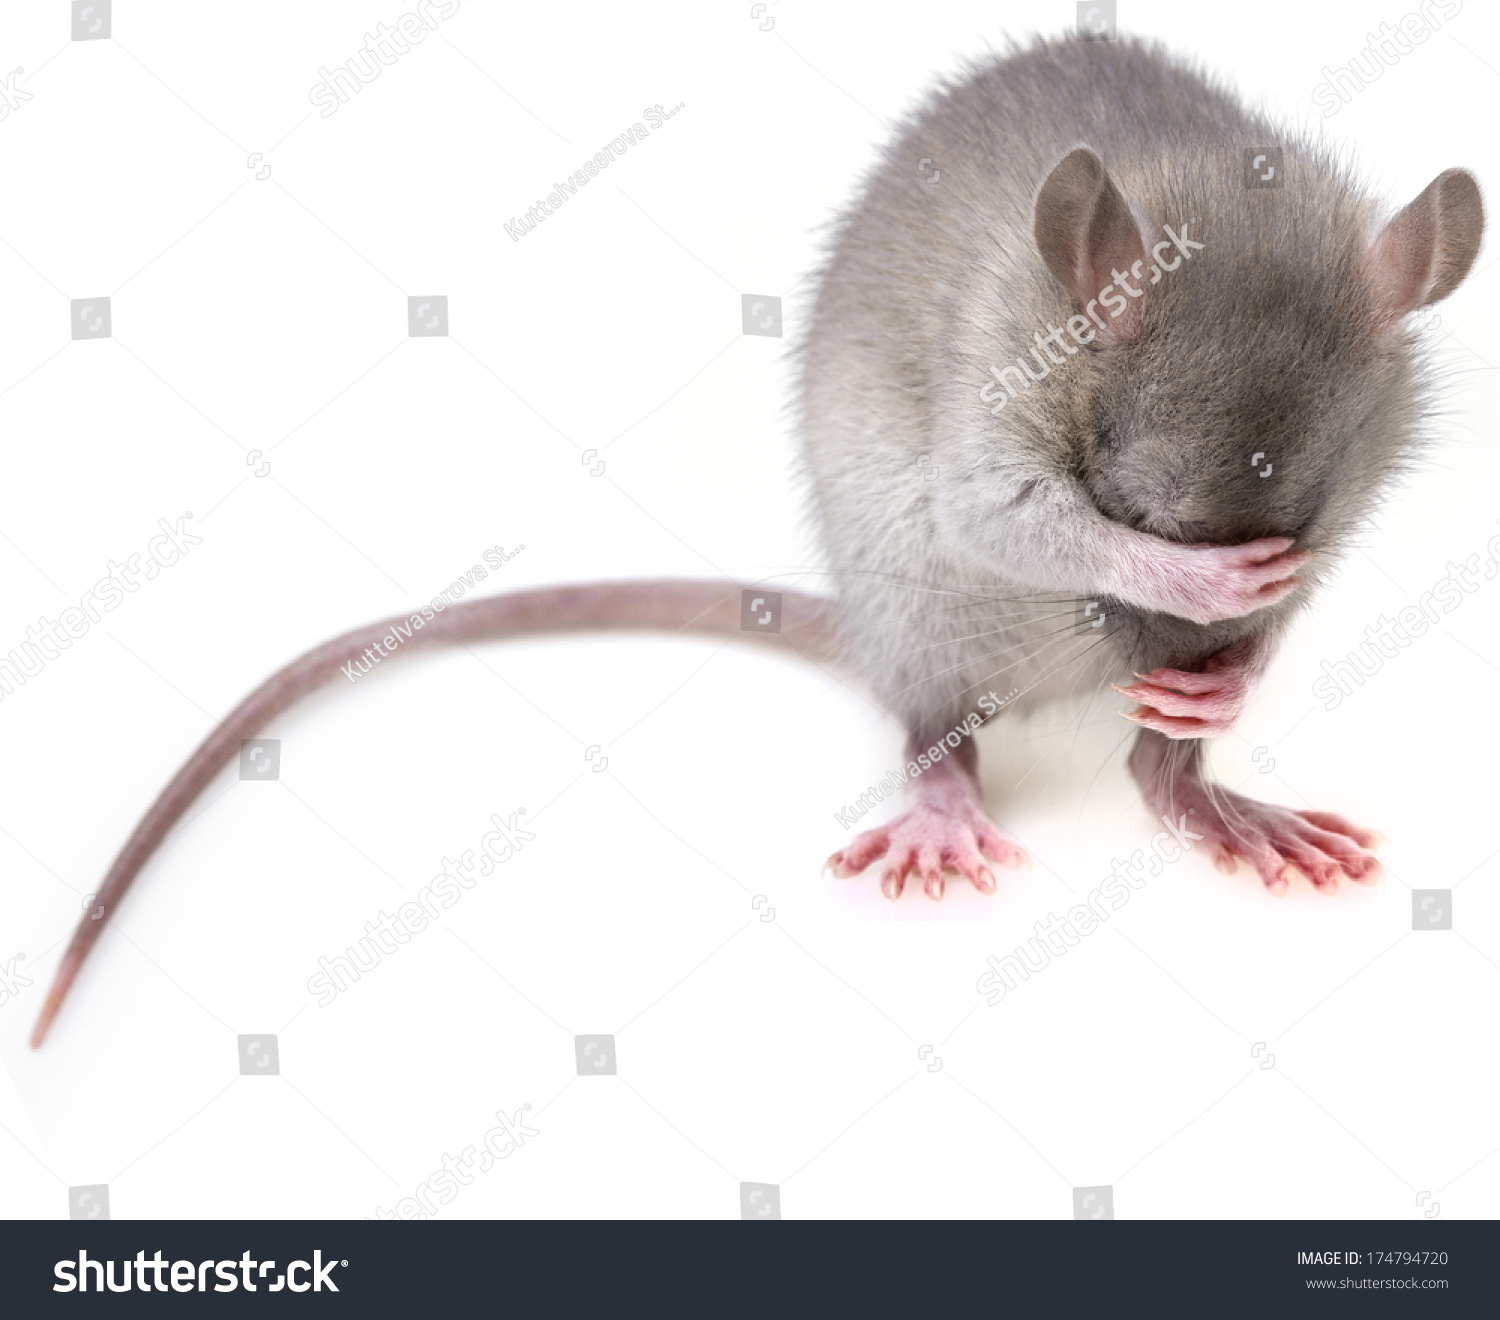 mice men john steinbeck essays 100% free papers on of mice and men essay  8th grade essays a random act of kindness essays bullying in school essays  of mice and men, by john steinbeck,.